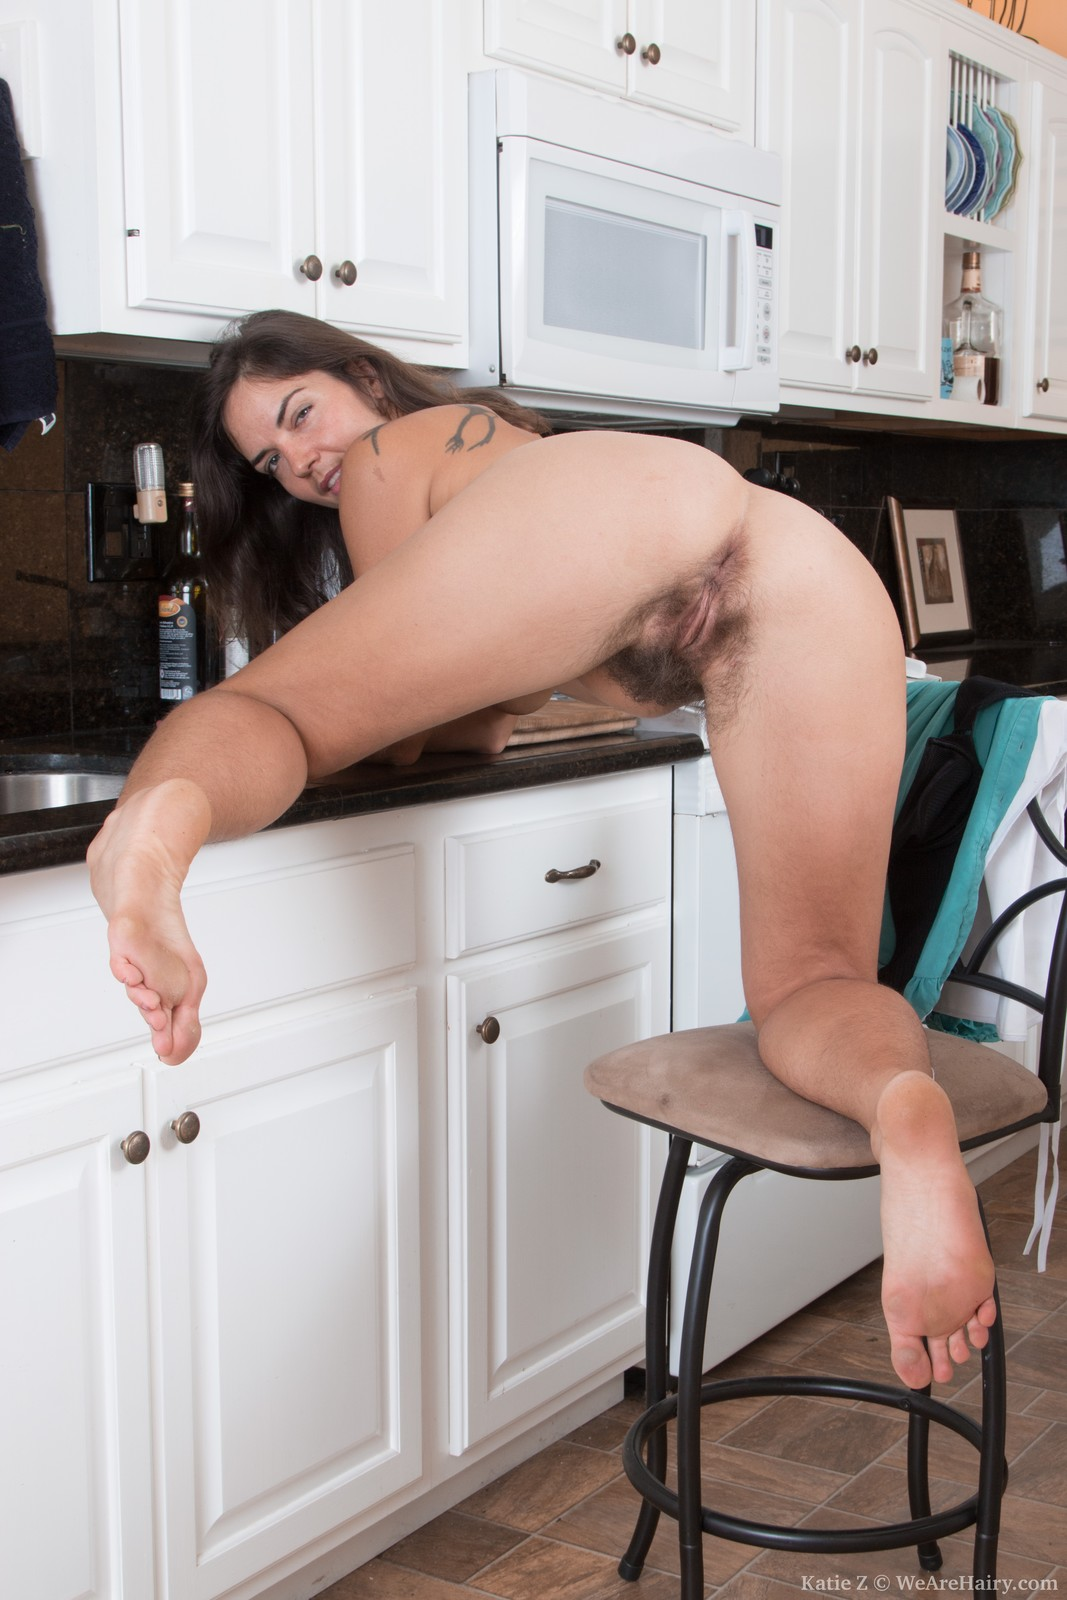 wpid-katie-z-strips-off-blue-dress-in-her-kitchen11.jpg